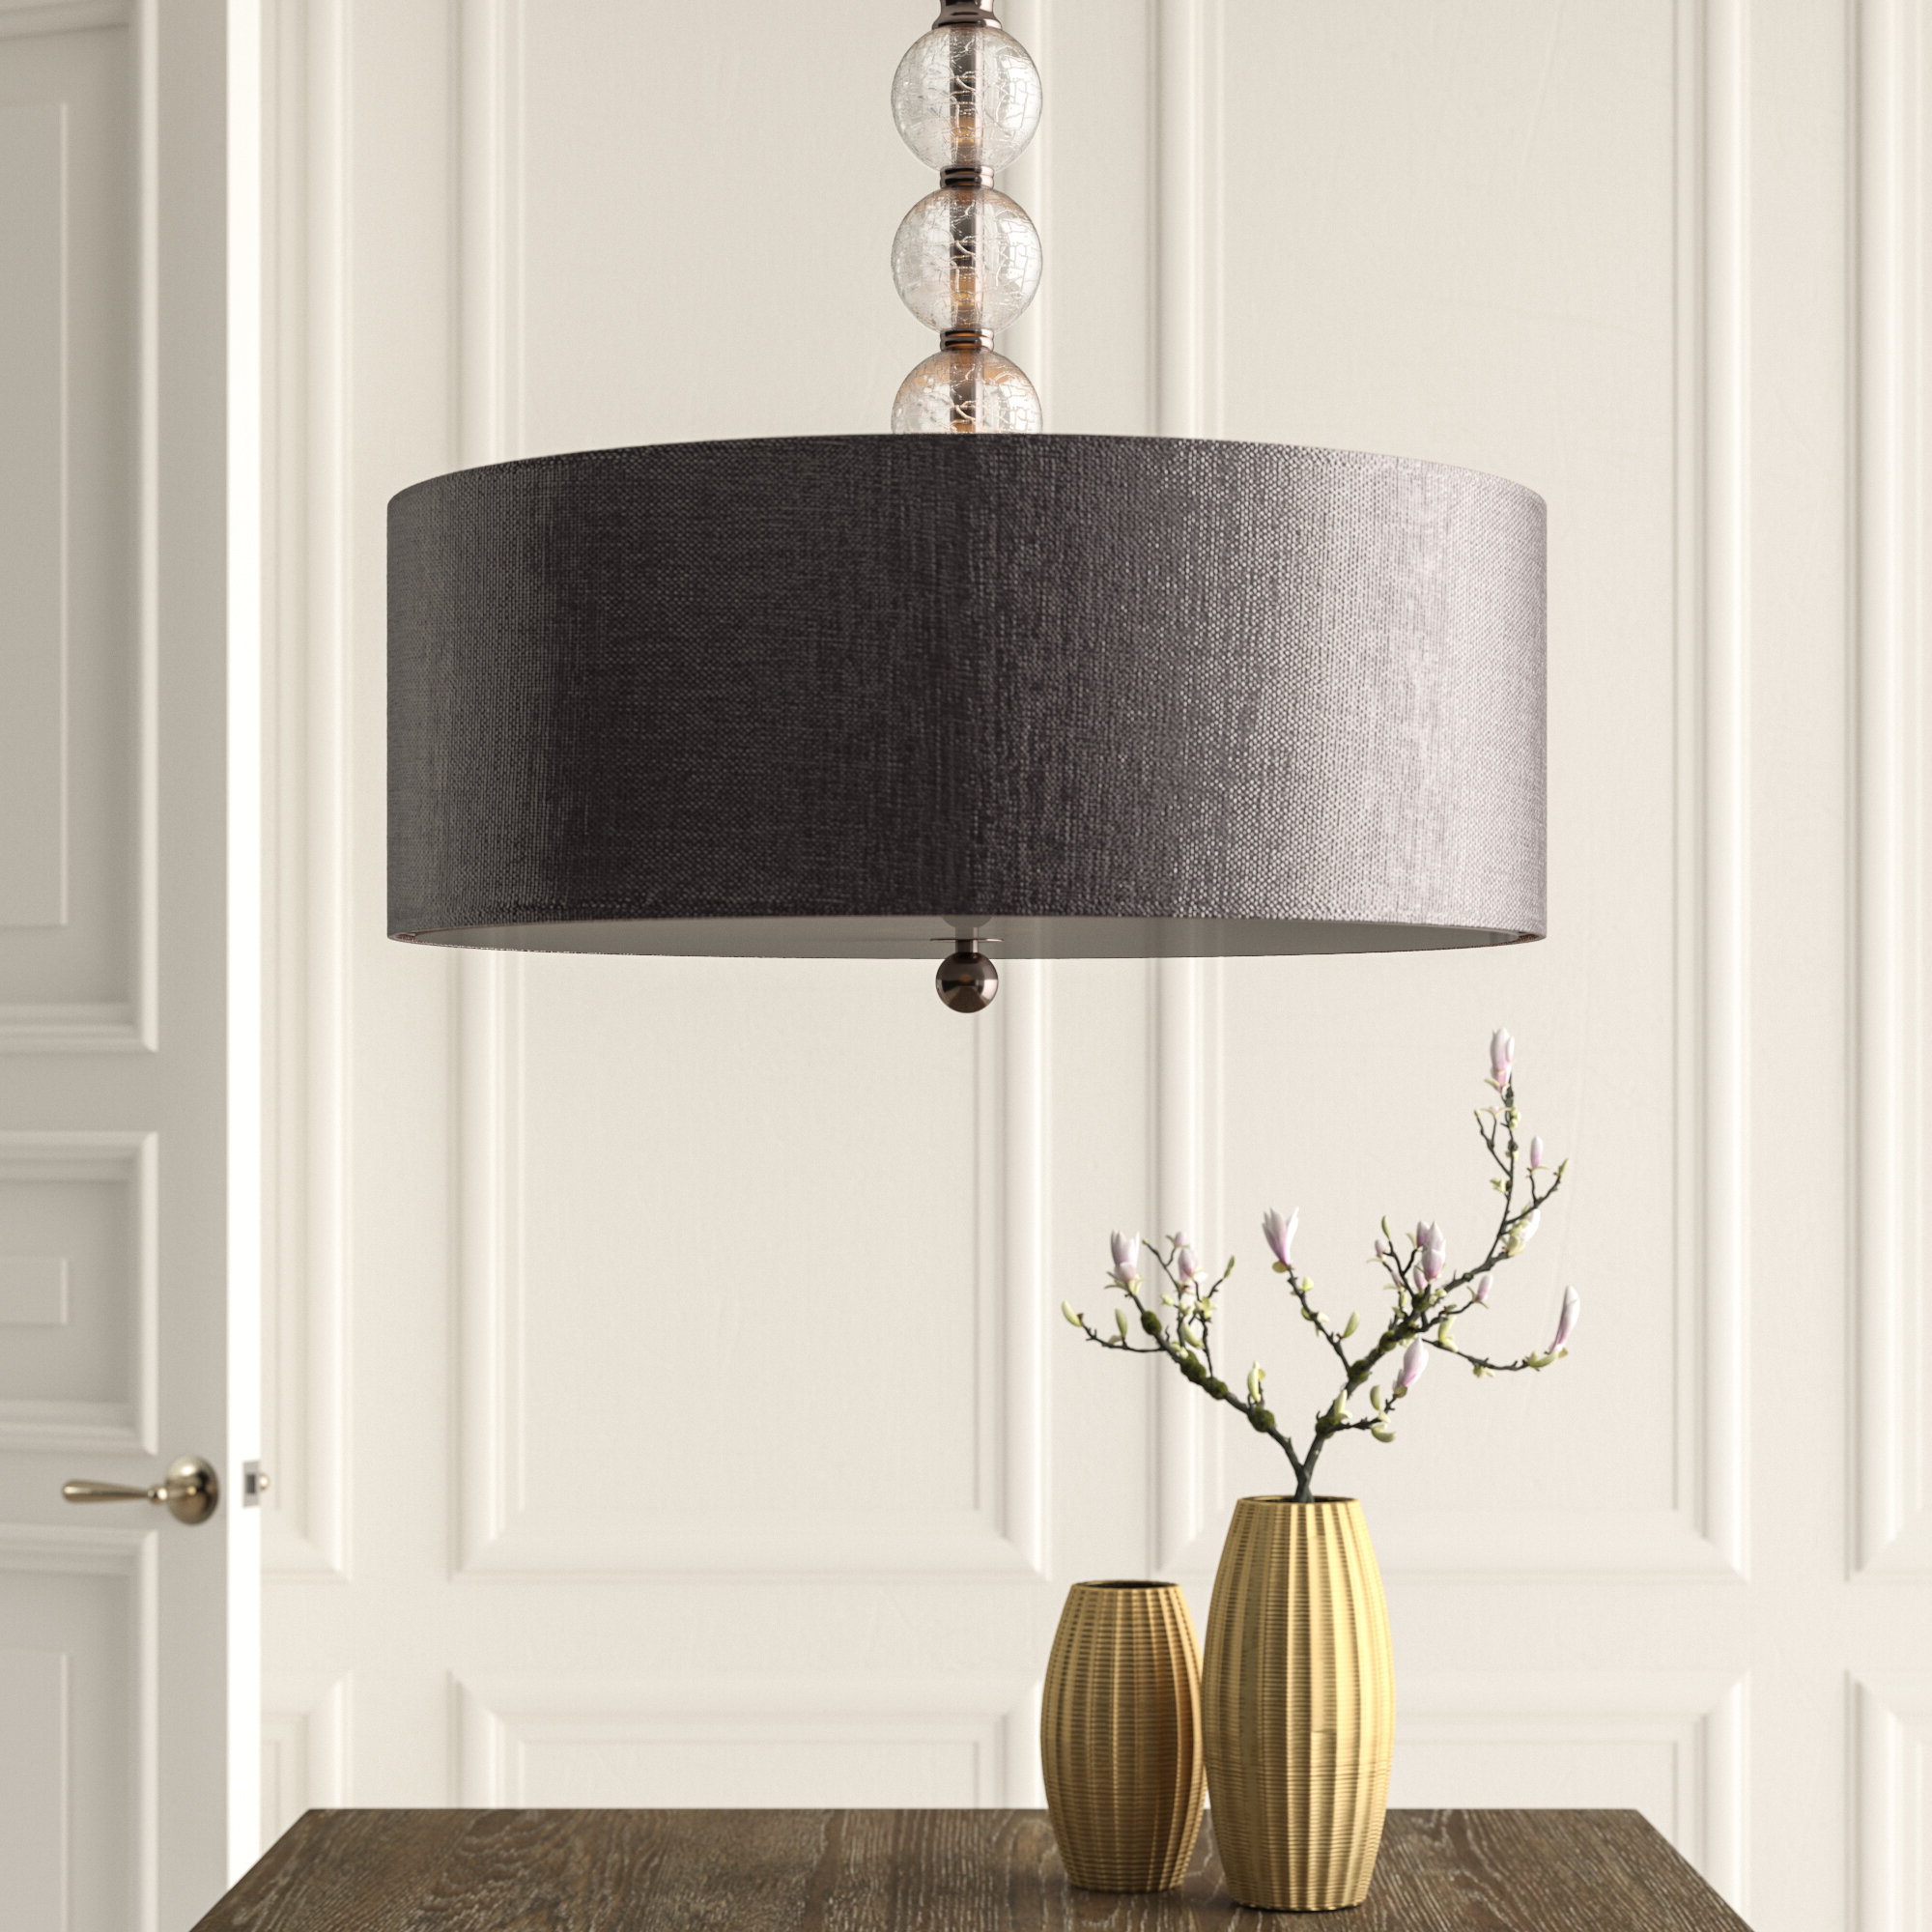 Gaetan 3 Light Single Drum Pendant Intended For Well Known Friedland 3 Light Drum Tiered Pendants (View 9 of 20)